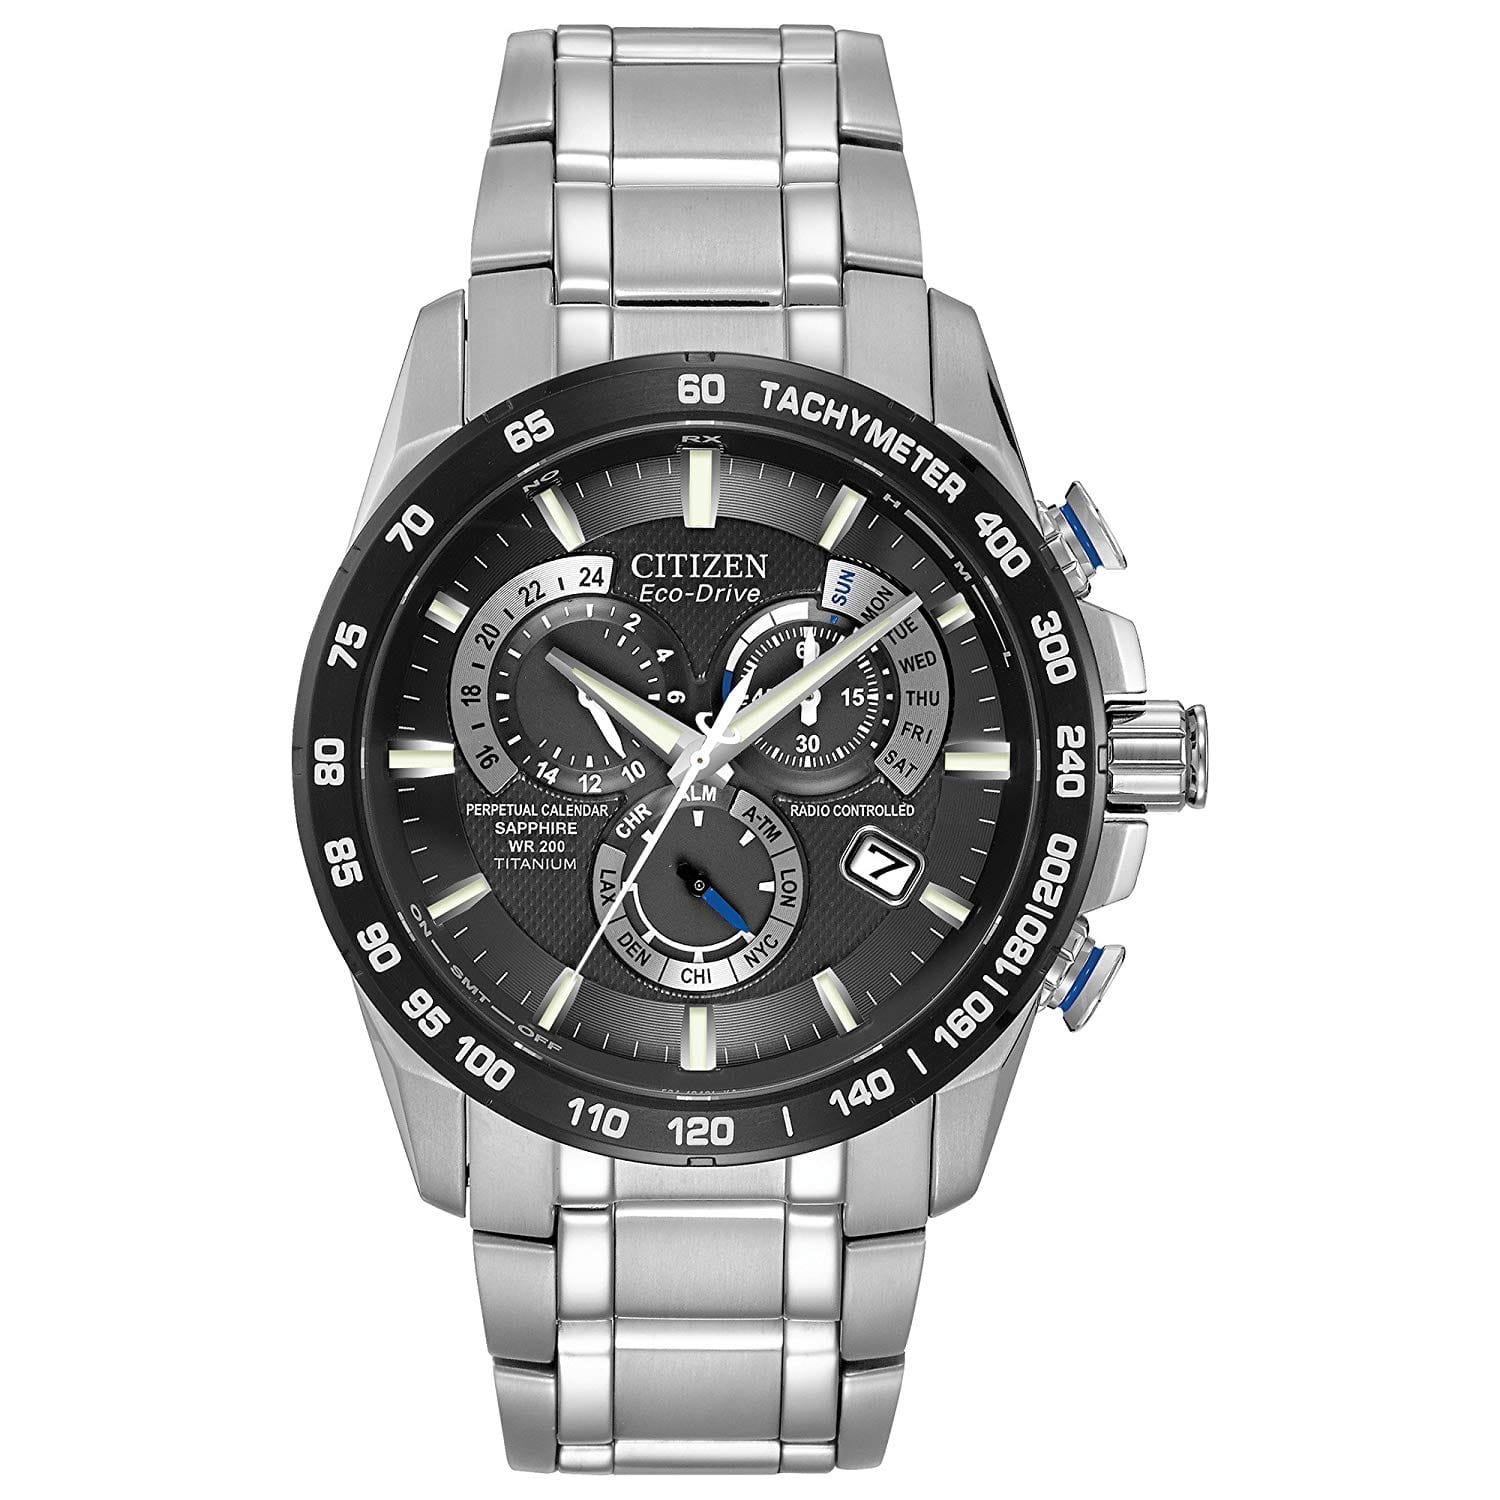 Citizen Eco-Drive Men's Titanium Perpetual Chrono Atomic Timekeeping Watch $239.99 + Free Shipping